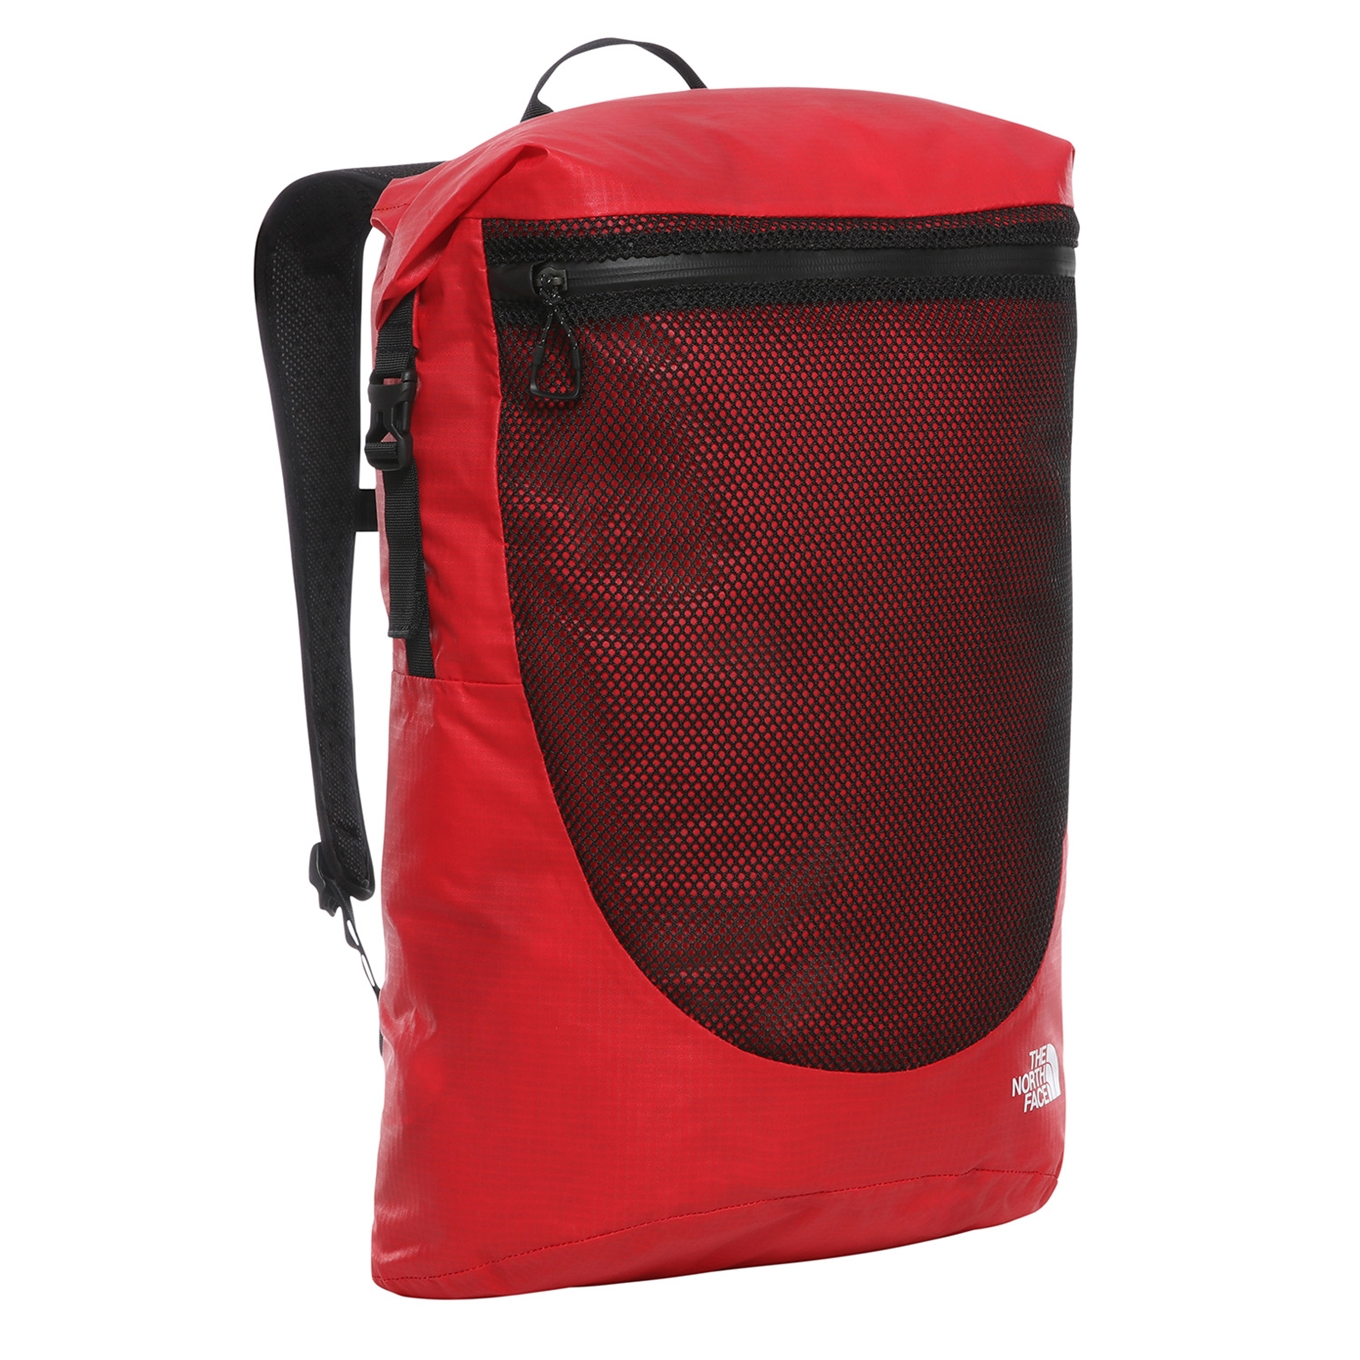 The North Face Rolltop Waterproof Backpack tnf red backpack